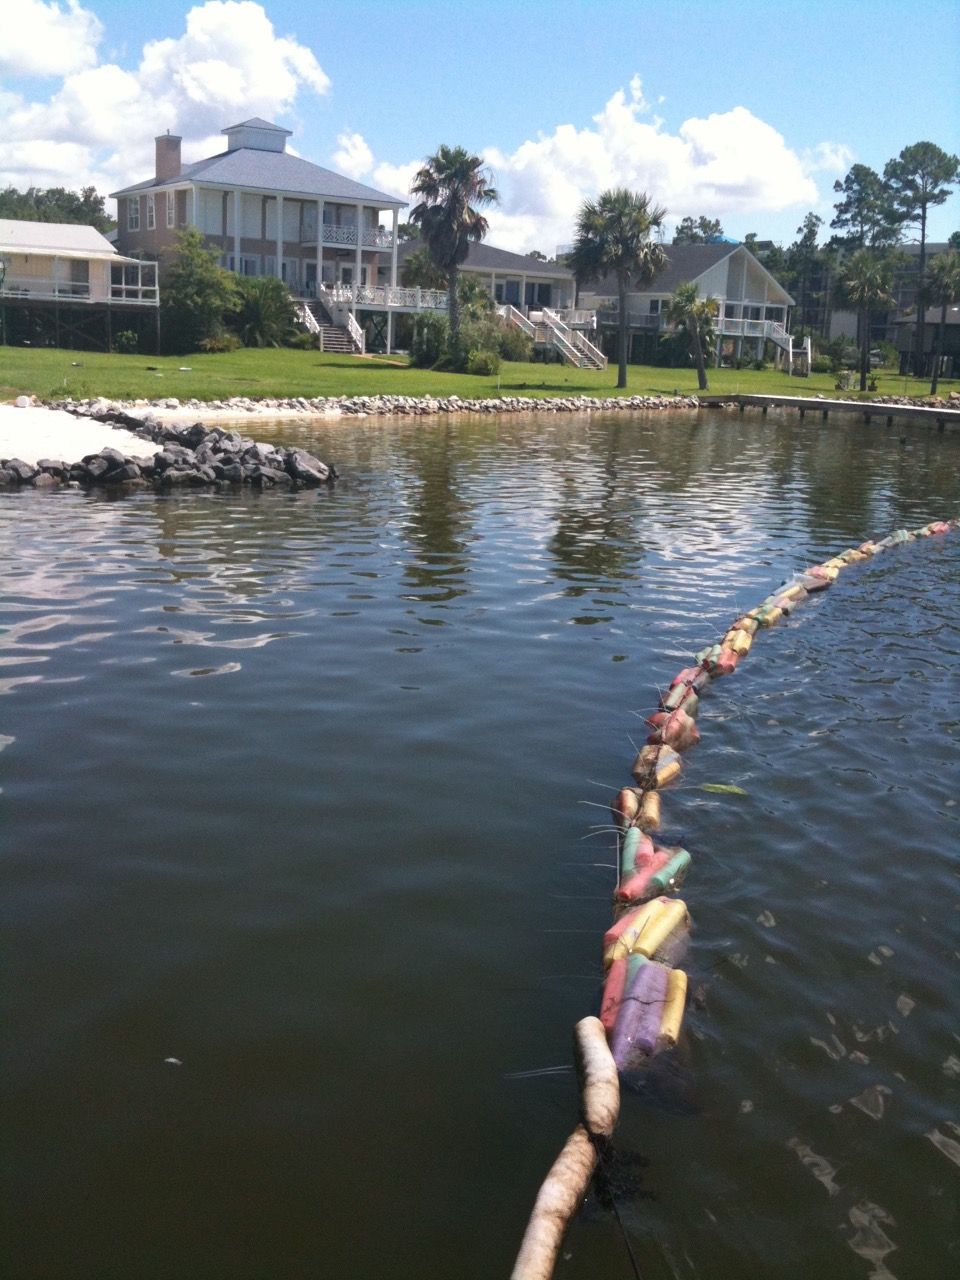 This is a picture of the hair booms in use after the BP oil spills to contain the oil and prevent contamination